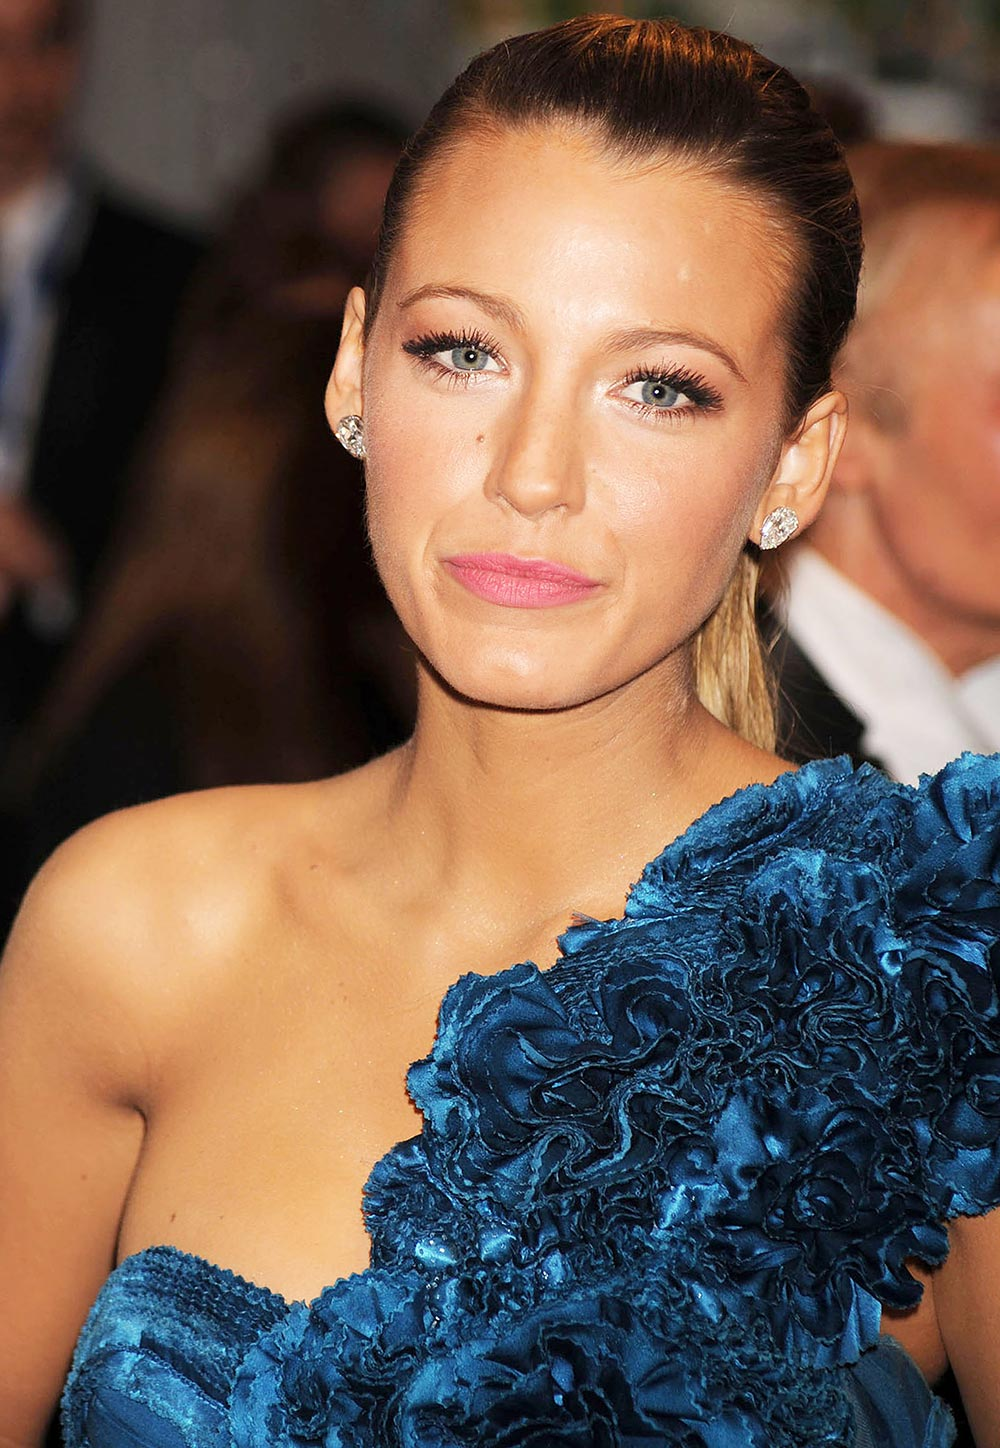 blake lively red dress makeup - photo #29